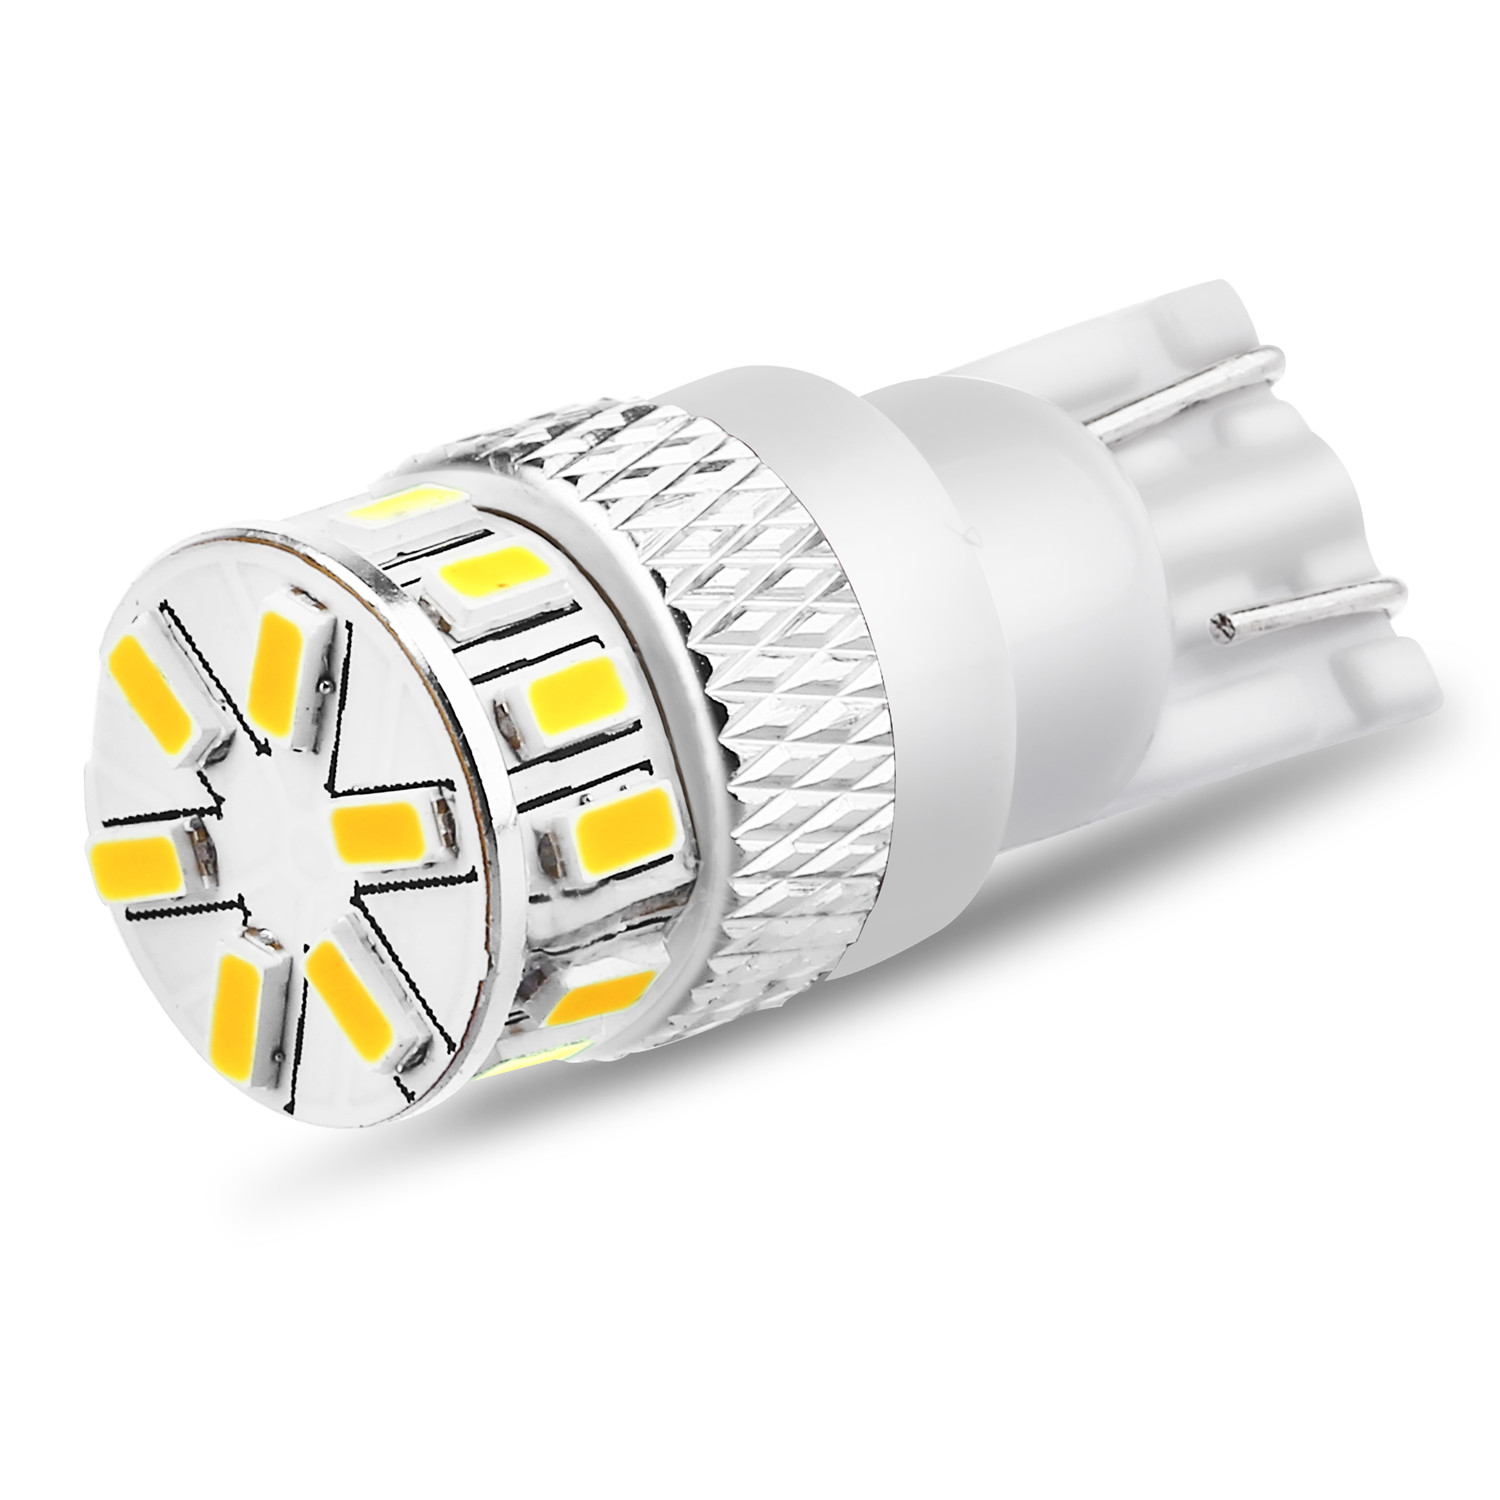 912 Dome Light led bulb interior map dome trunk Room door Lights White